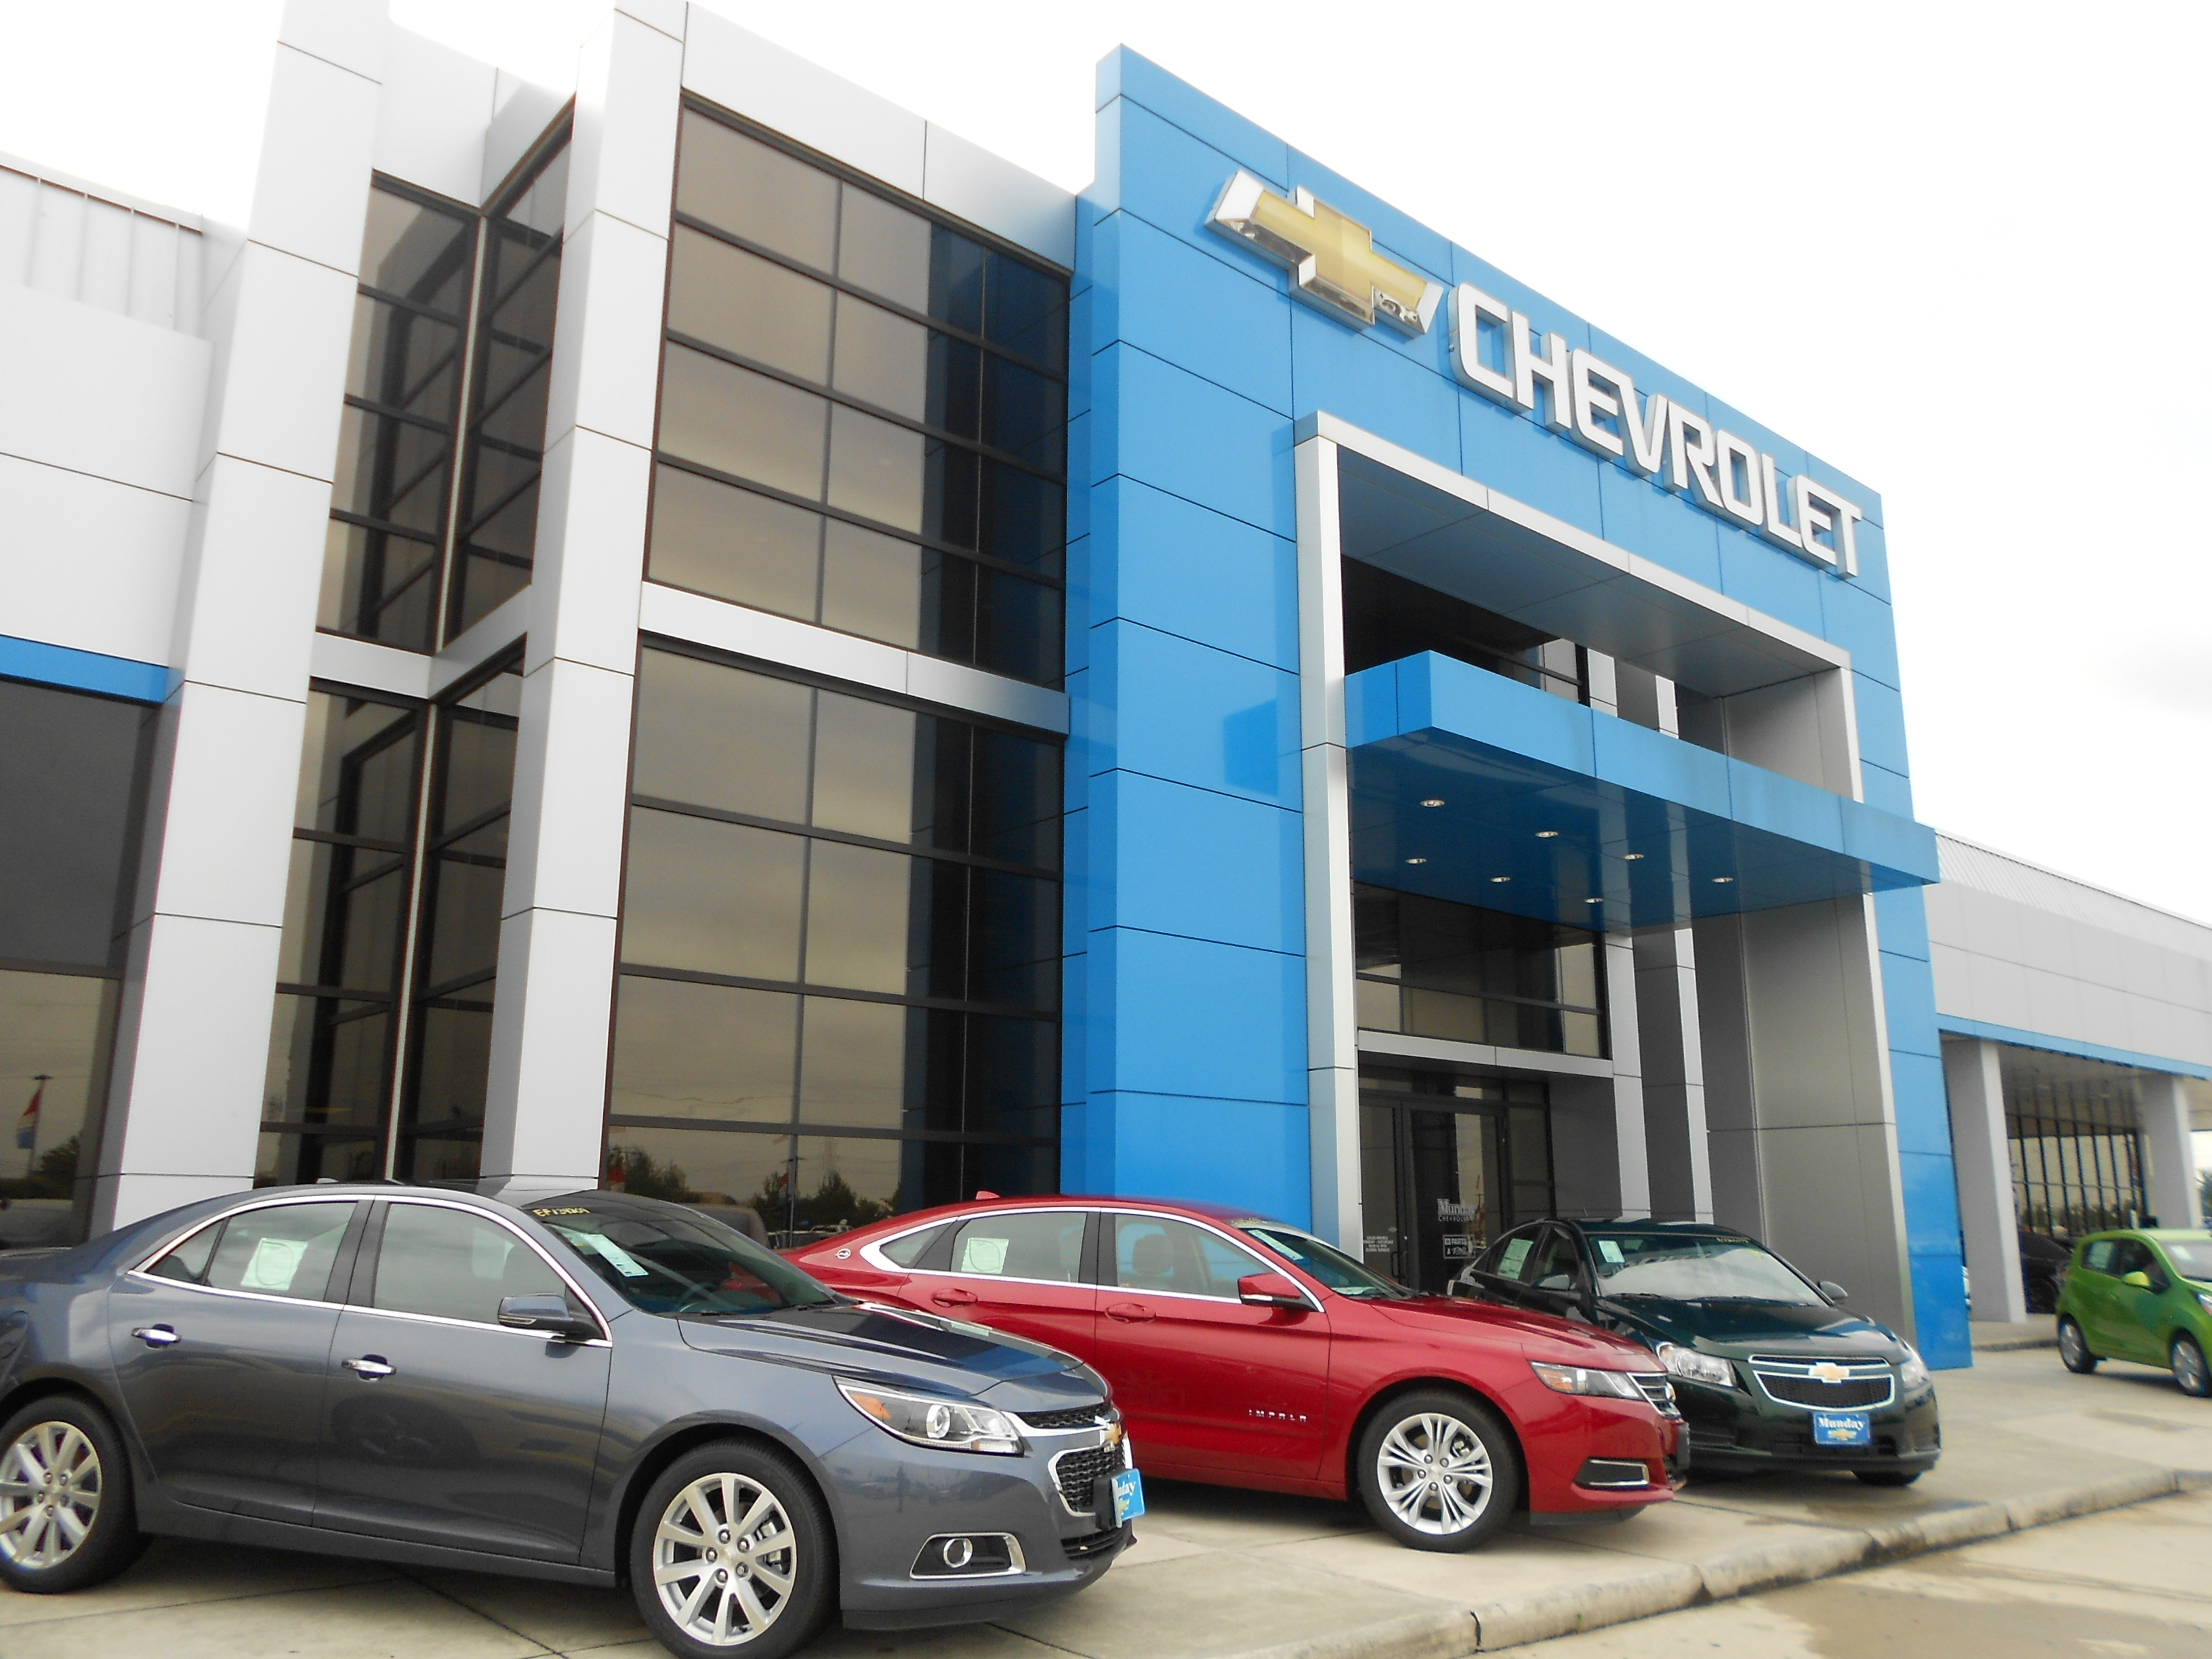 Welcome to munday chevrolet